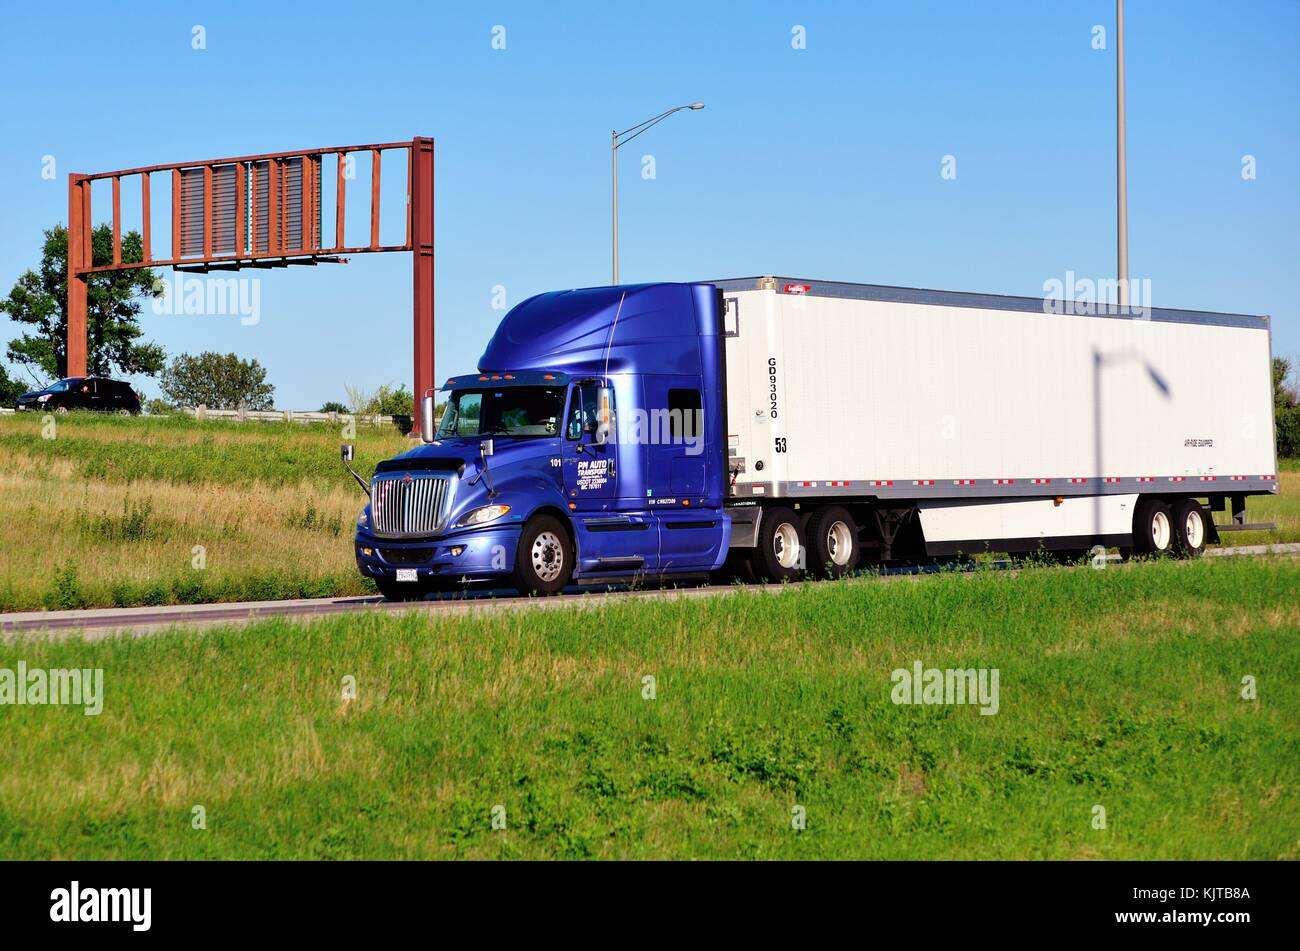 A semi-trailer or semi hauling content on a section of an Interstate highway, divided  highway system in  Addison, - Stock Image